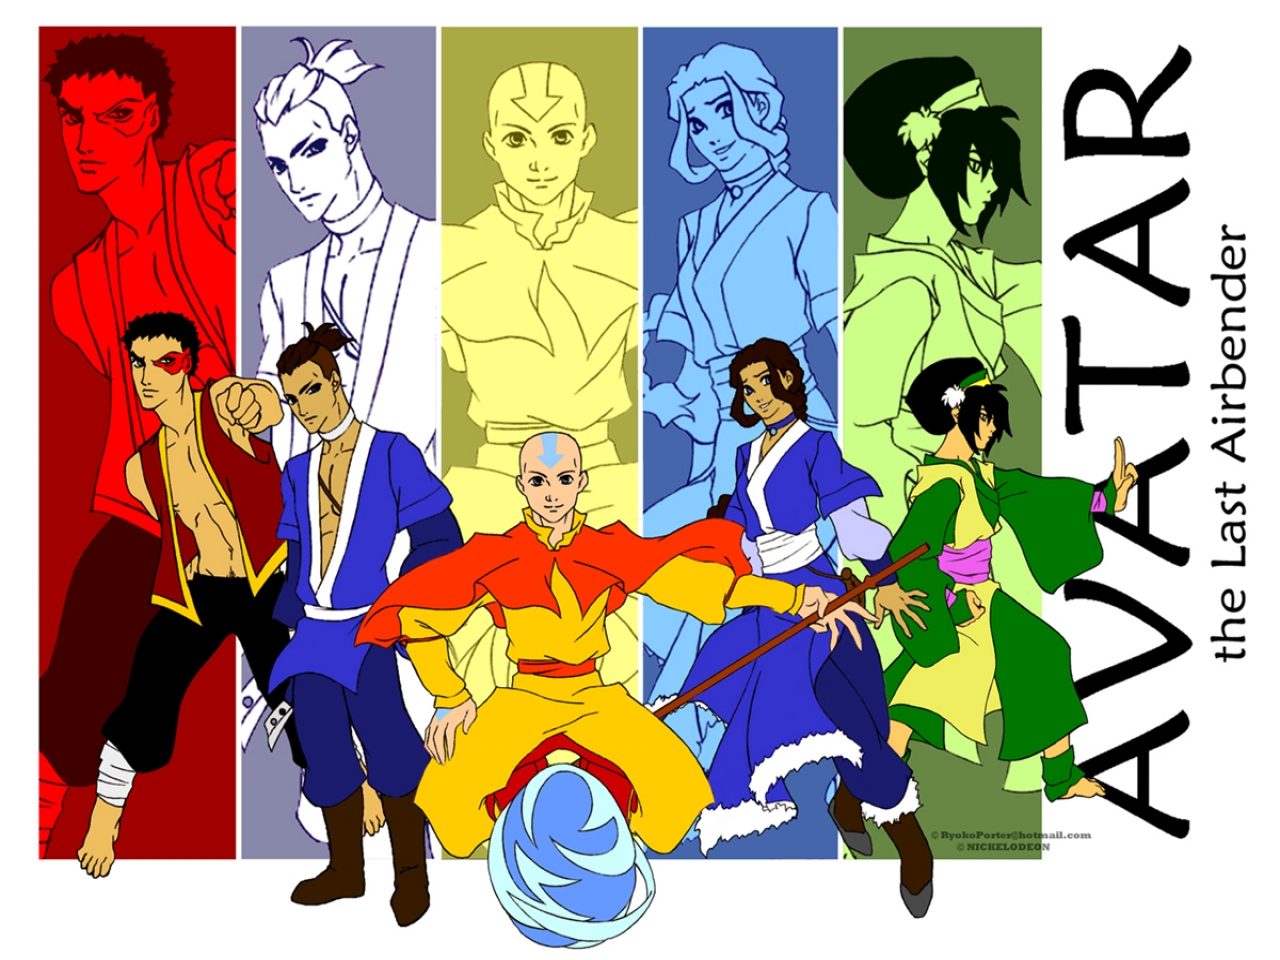 Download free avatar the last airbender hd desktop wallpapers,high